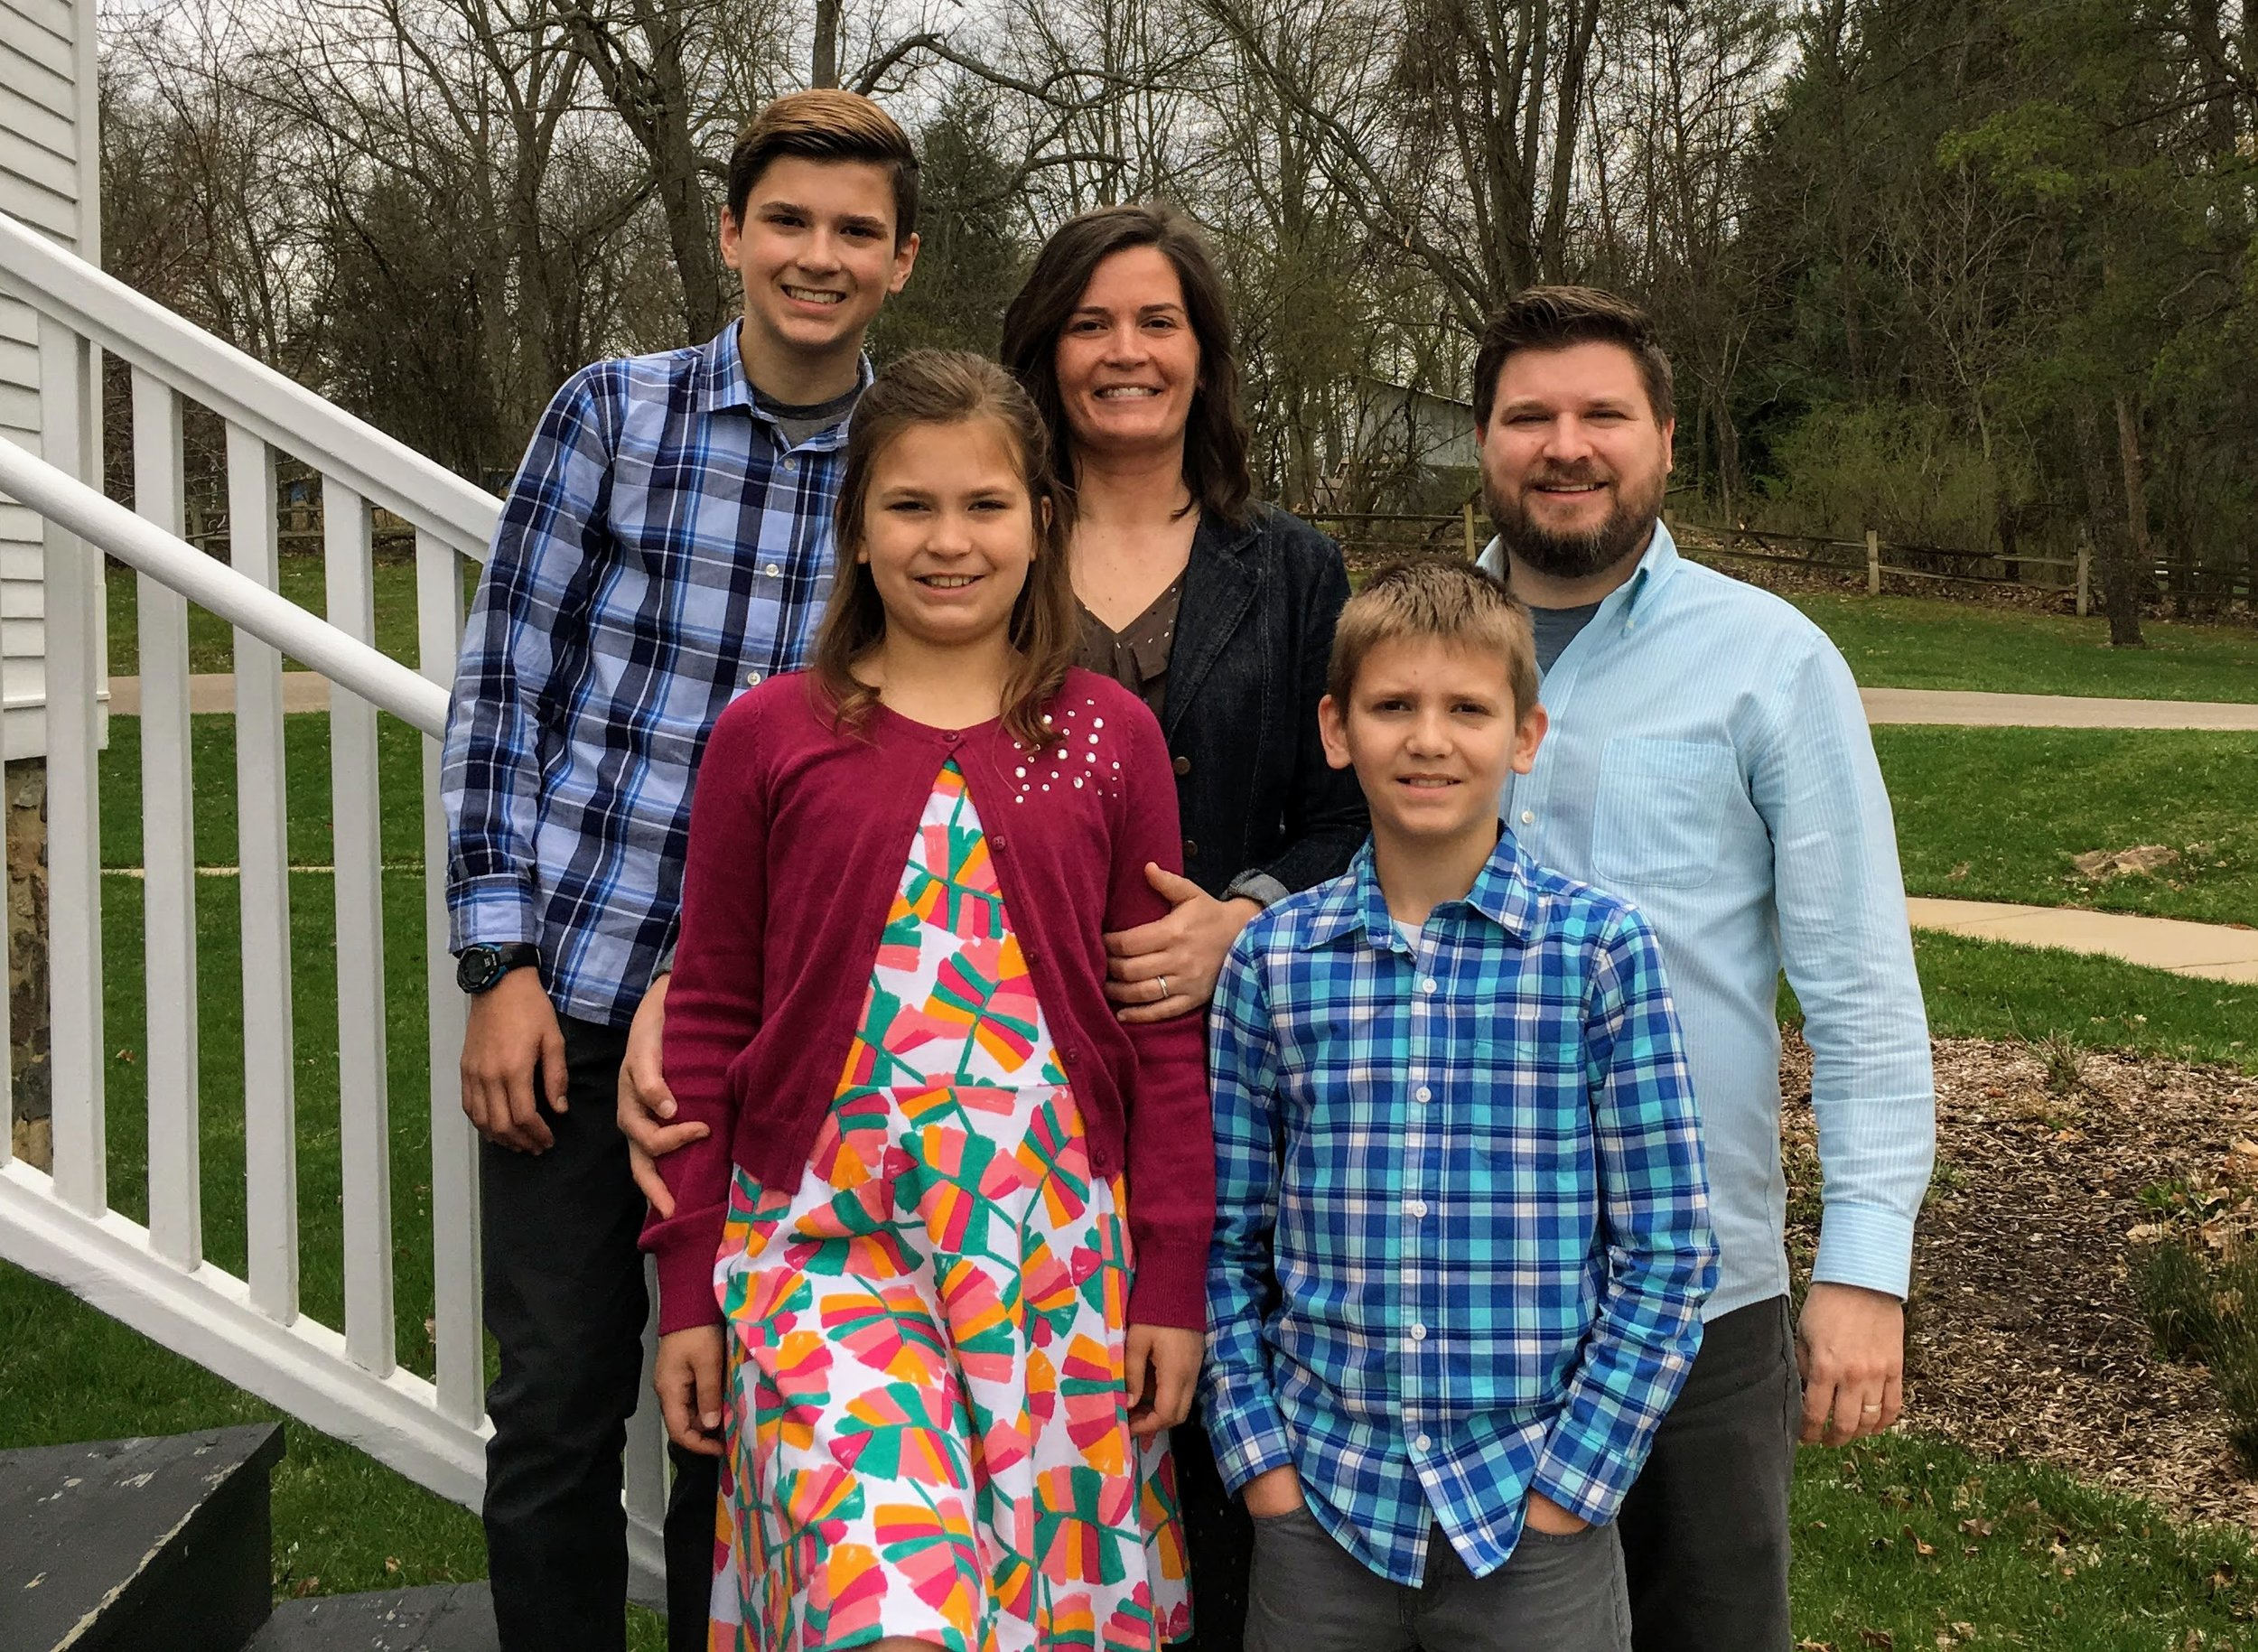 The Family Project - Alex and Becky TealWhy do families work? Because God Himself designed them! Thriving families will lead to thriving communities, and thriving communities will transform the world. People will find purpose, joy and redemption; and generation after generation will create a positive legacy.alexteal@gmail.com